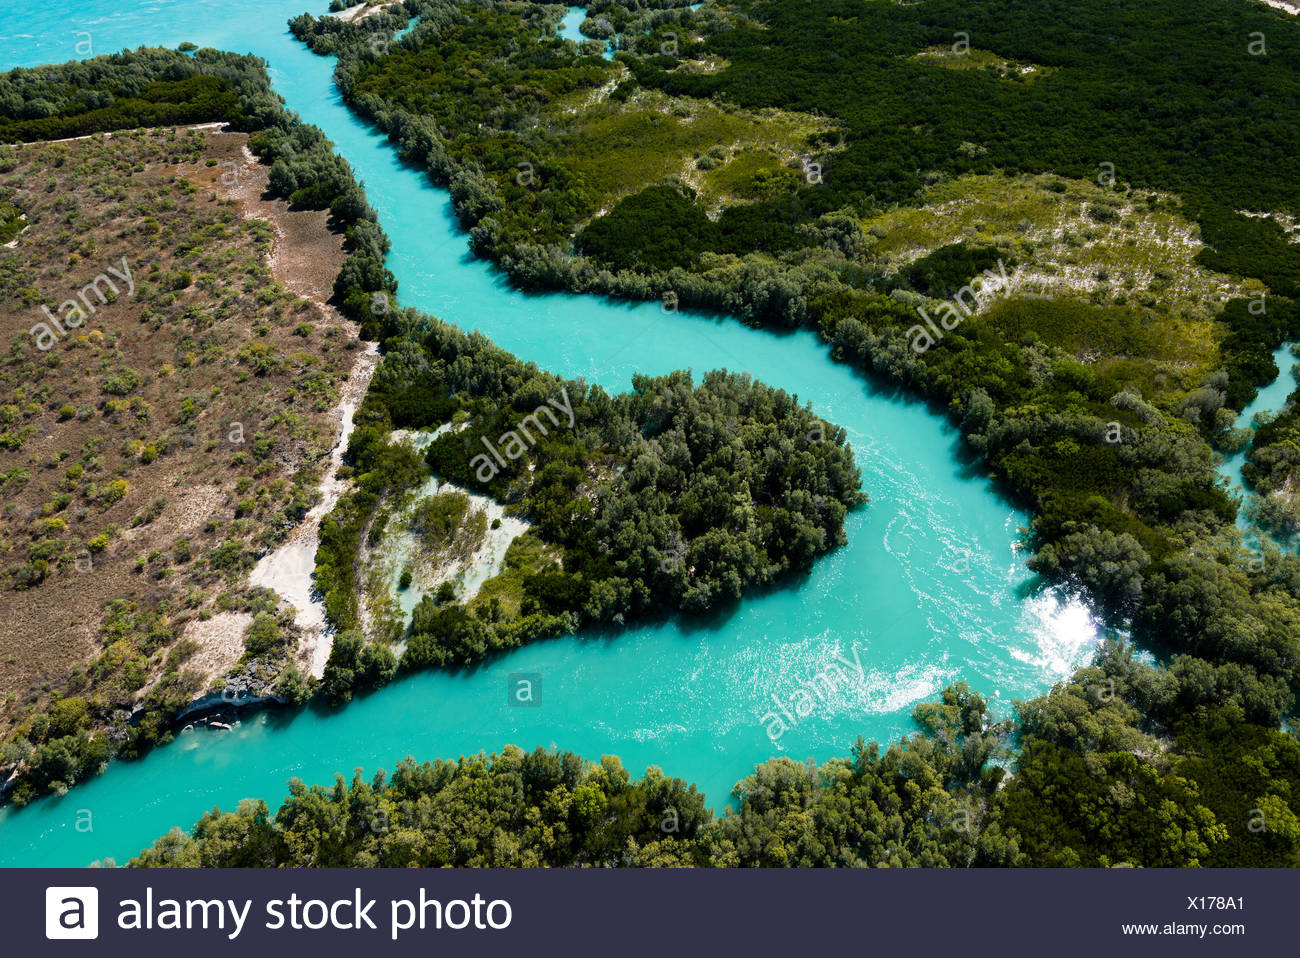 A turquoise tidal river winding it's way through mangroves in a tidal estuary. - Stock Image